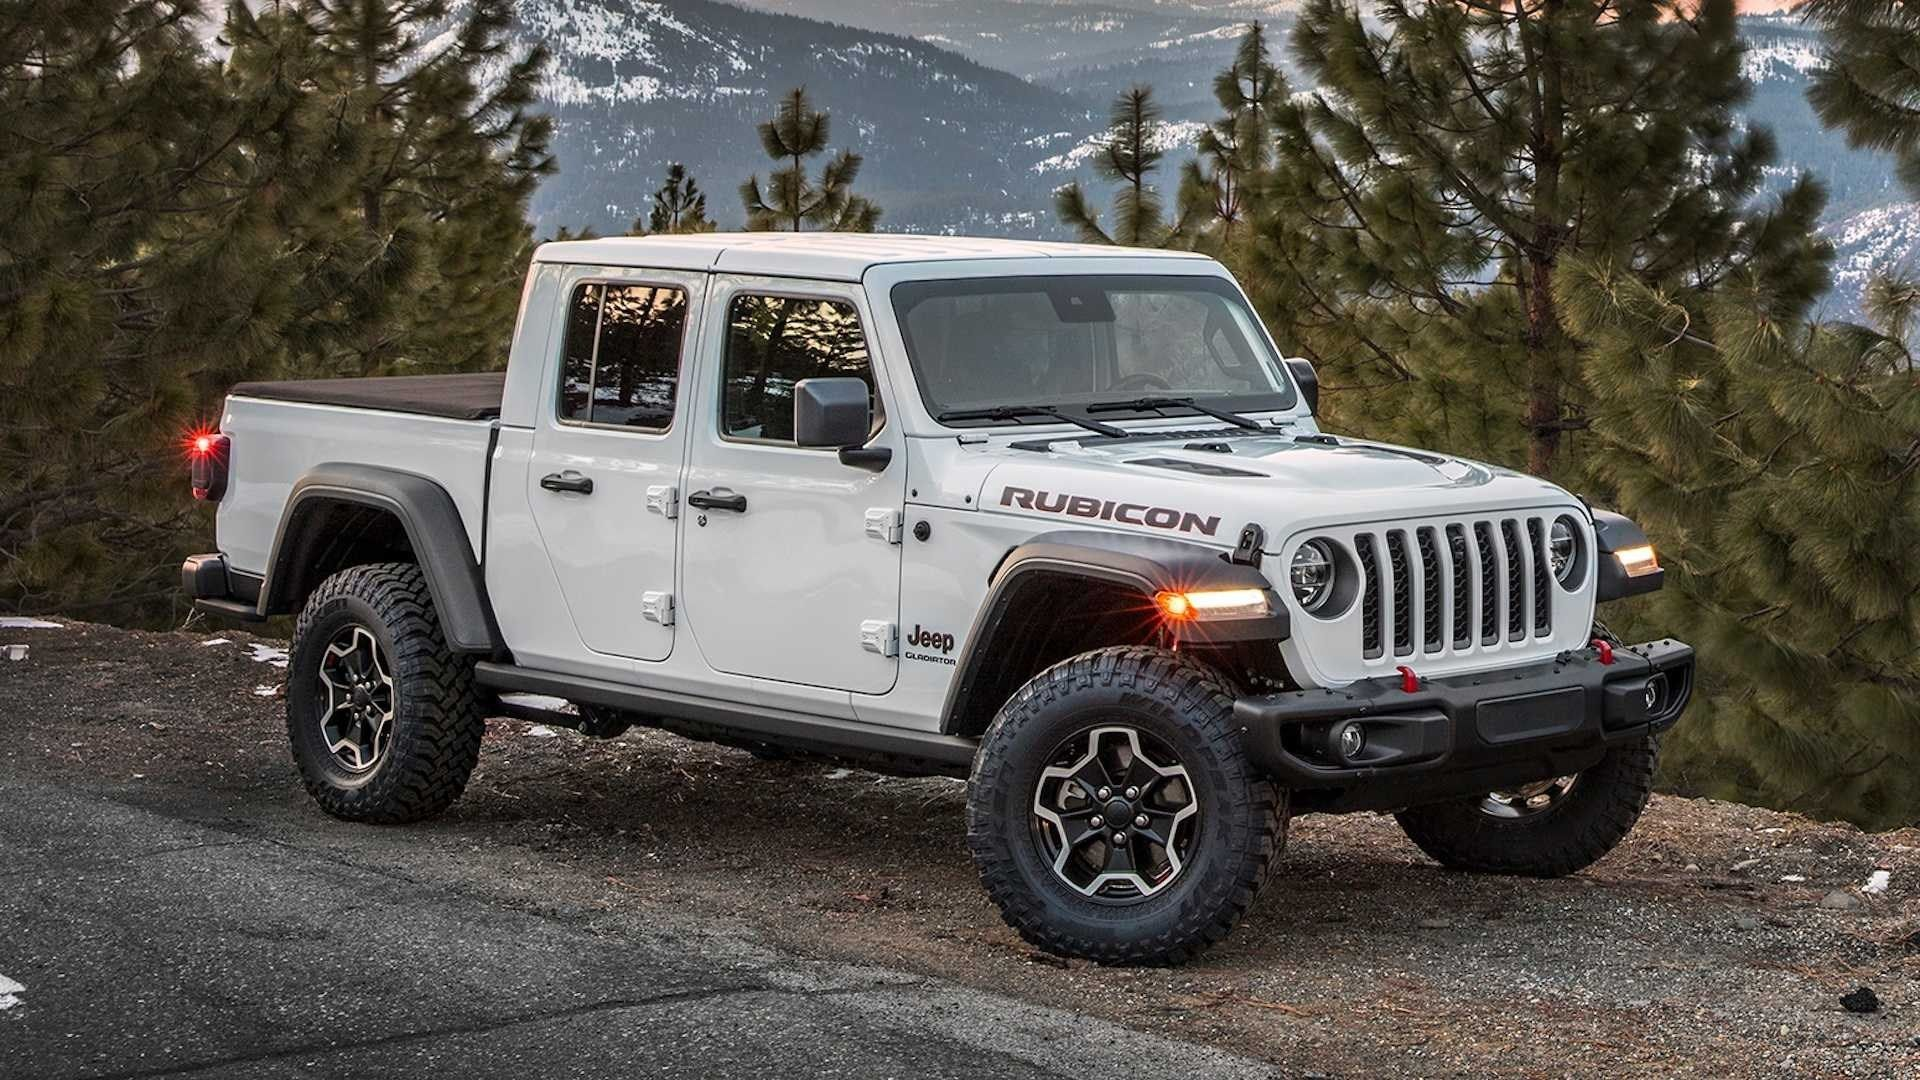 When Will The Jeep Rubicon 2020 Price Look Like Jeep Gladiator Jeep Pickup Jeep Pickup Truck